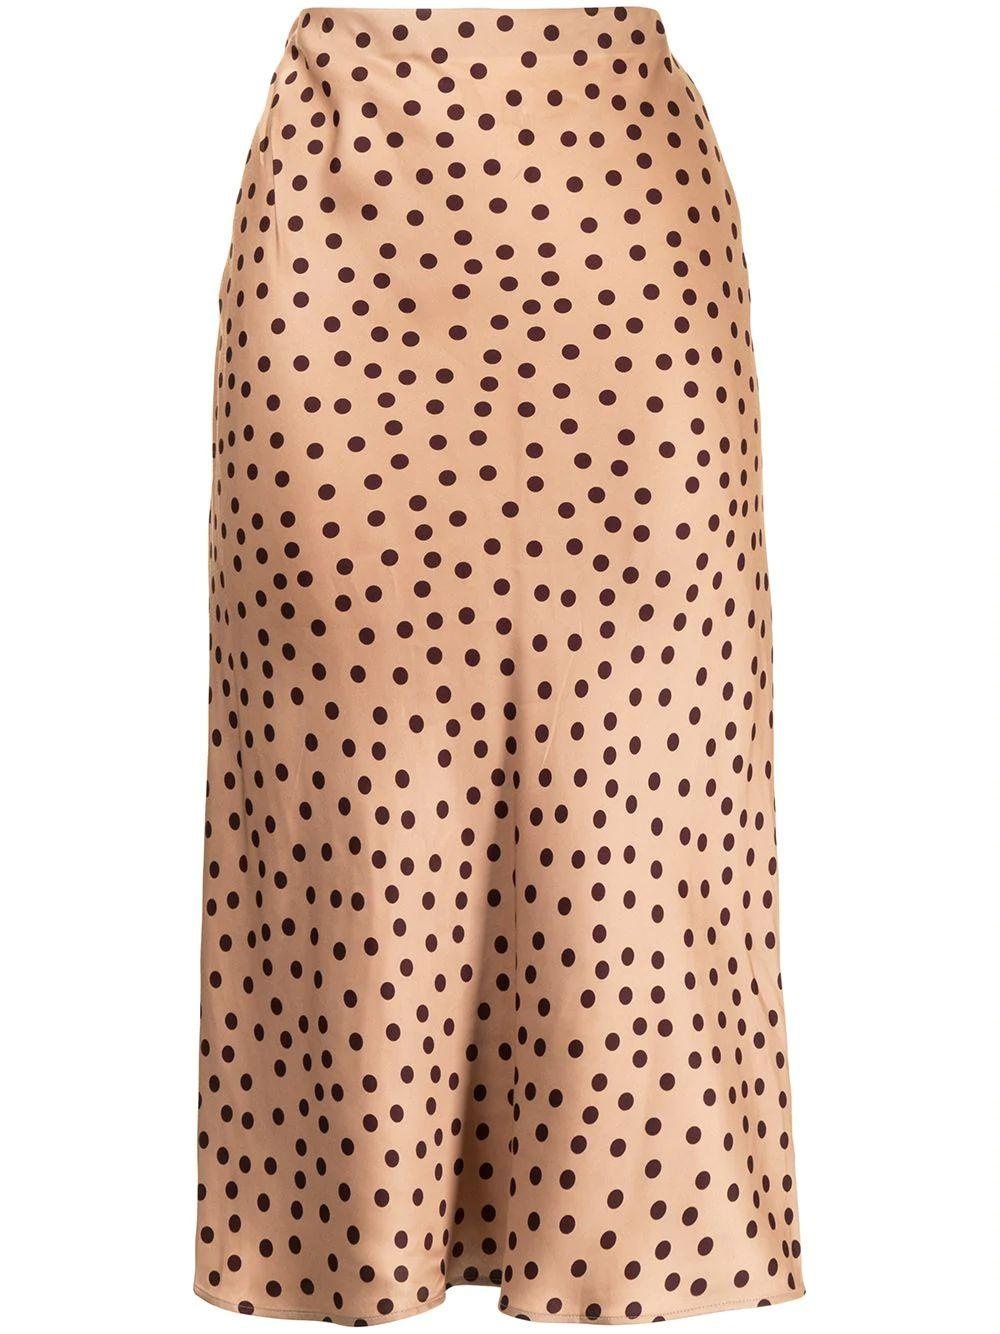 Perin Bias Dotted Midi Skirt